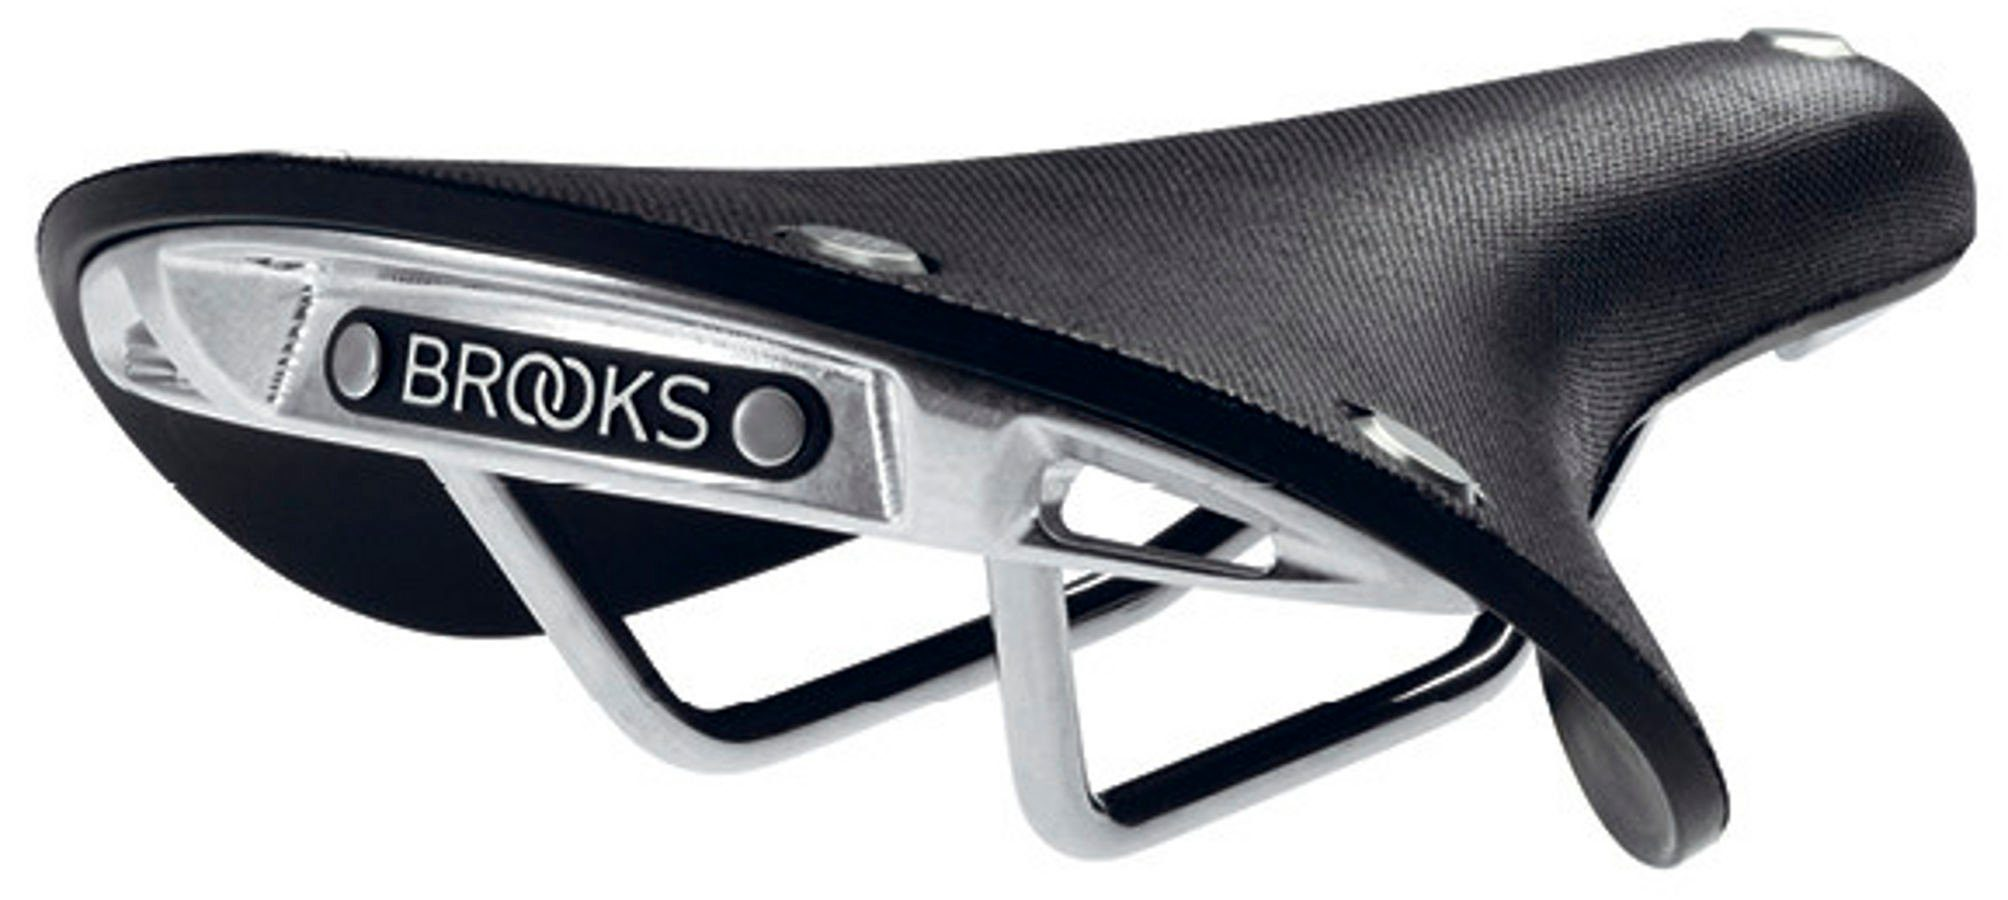 Brooks Fahrradsattel »Cambium C19 Saddle«